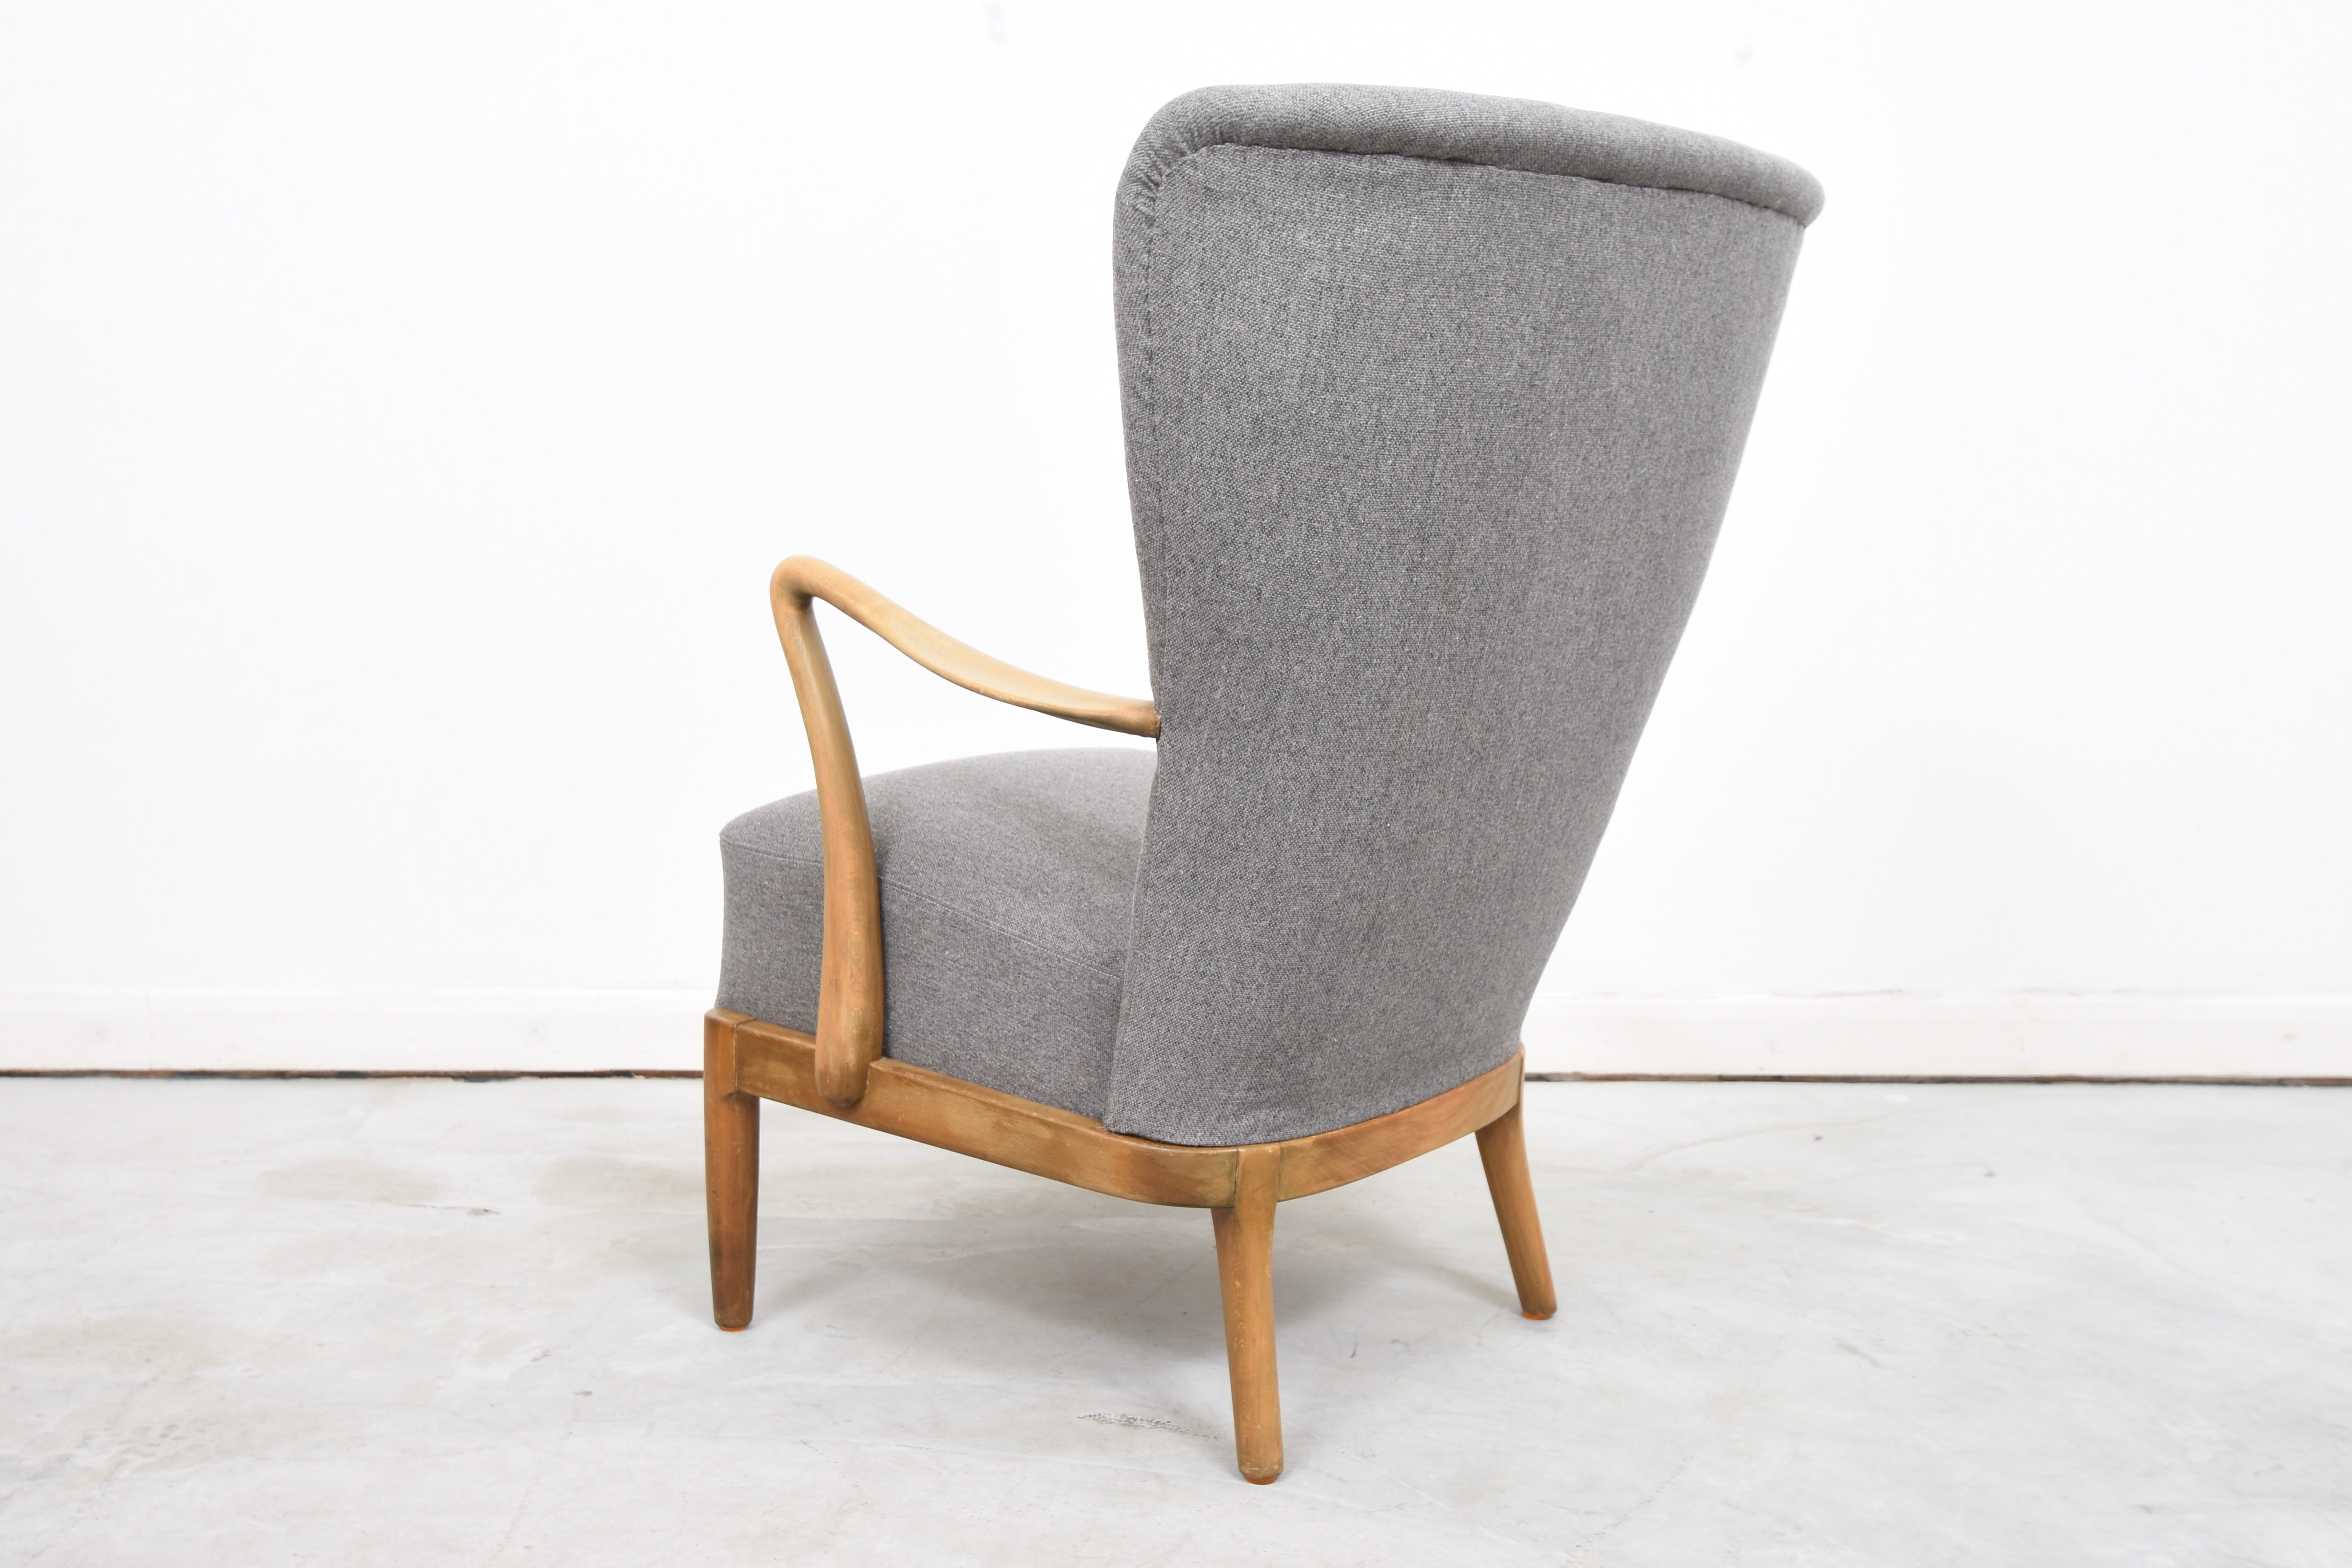 PrebenJan16 1940s wing back lounge chair by Fritz Hansen